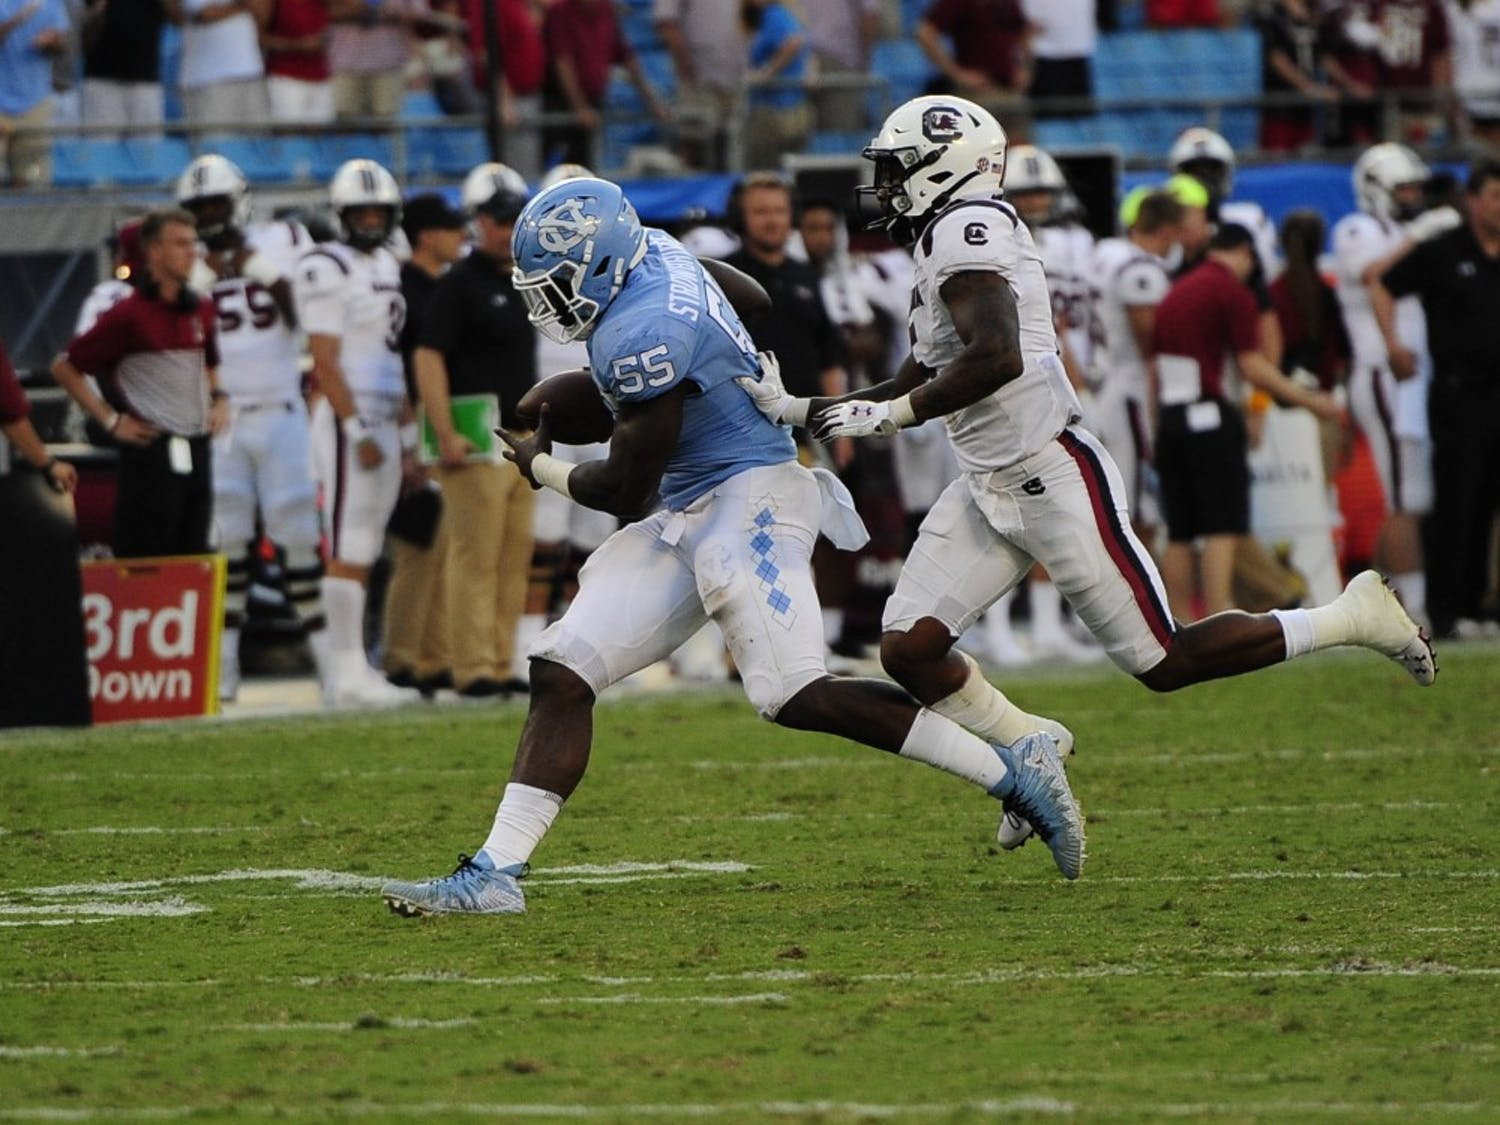 The Tar Heels took on the Game Cocks in the Belk College Kick Off in Charlotte, NC on Saturday, August 31, 2019. UNC beat the University of South Carolina 24-20.